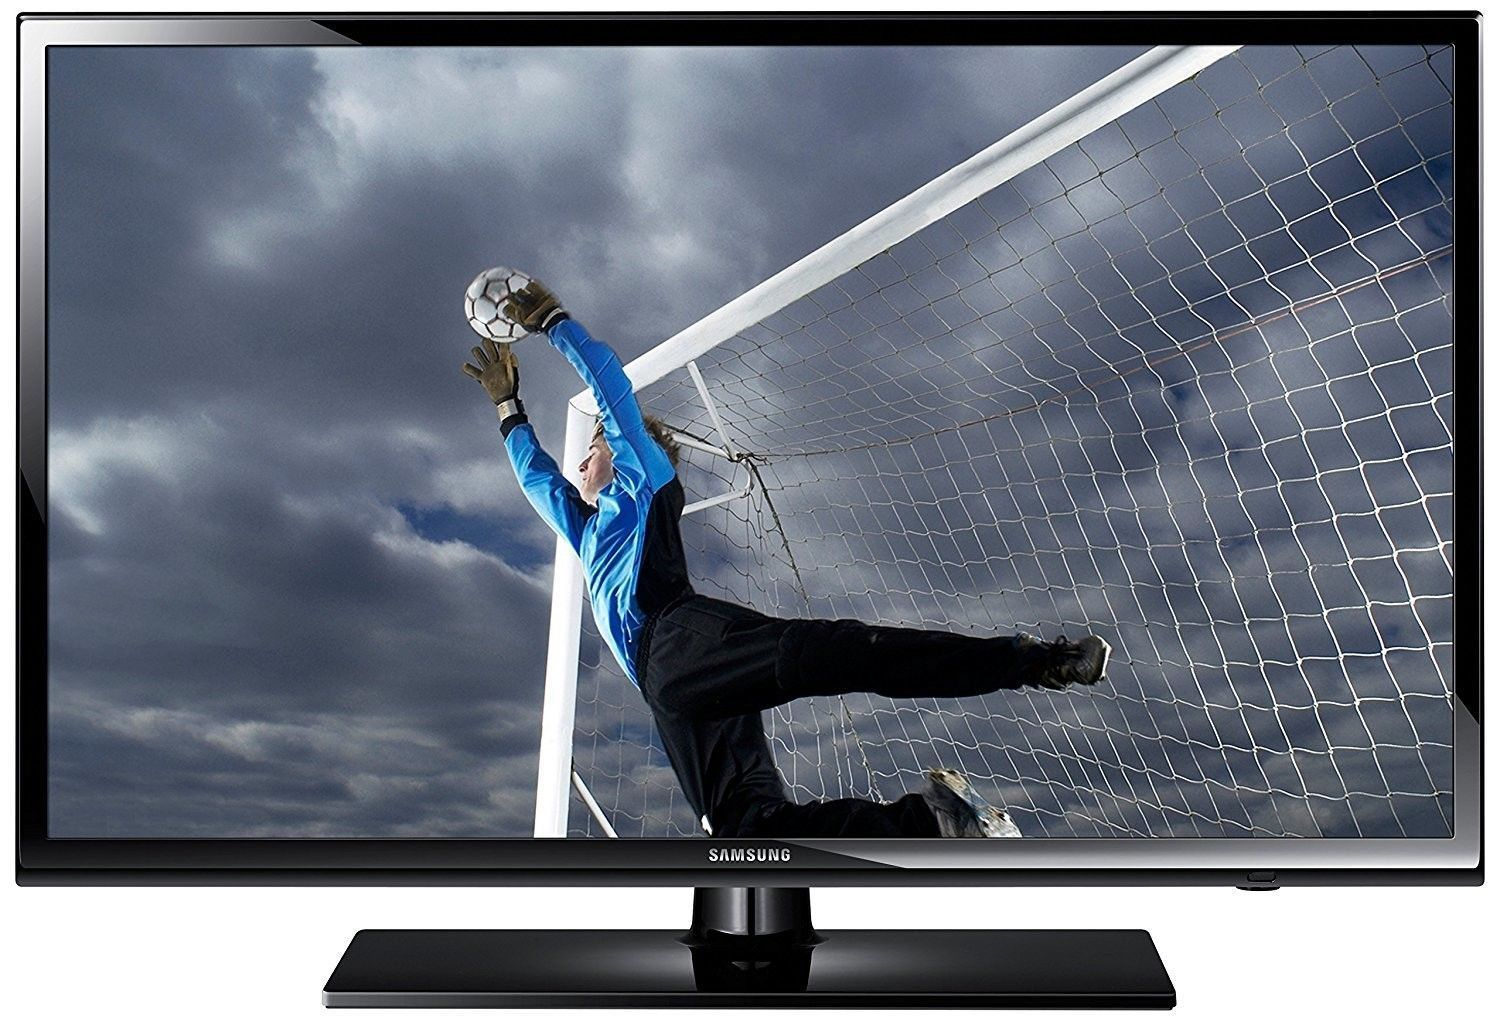 Samsung Flat Screen Tv Price Us Deals Tv Samsung 40